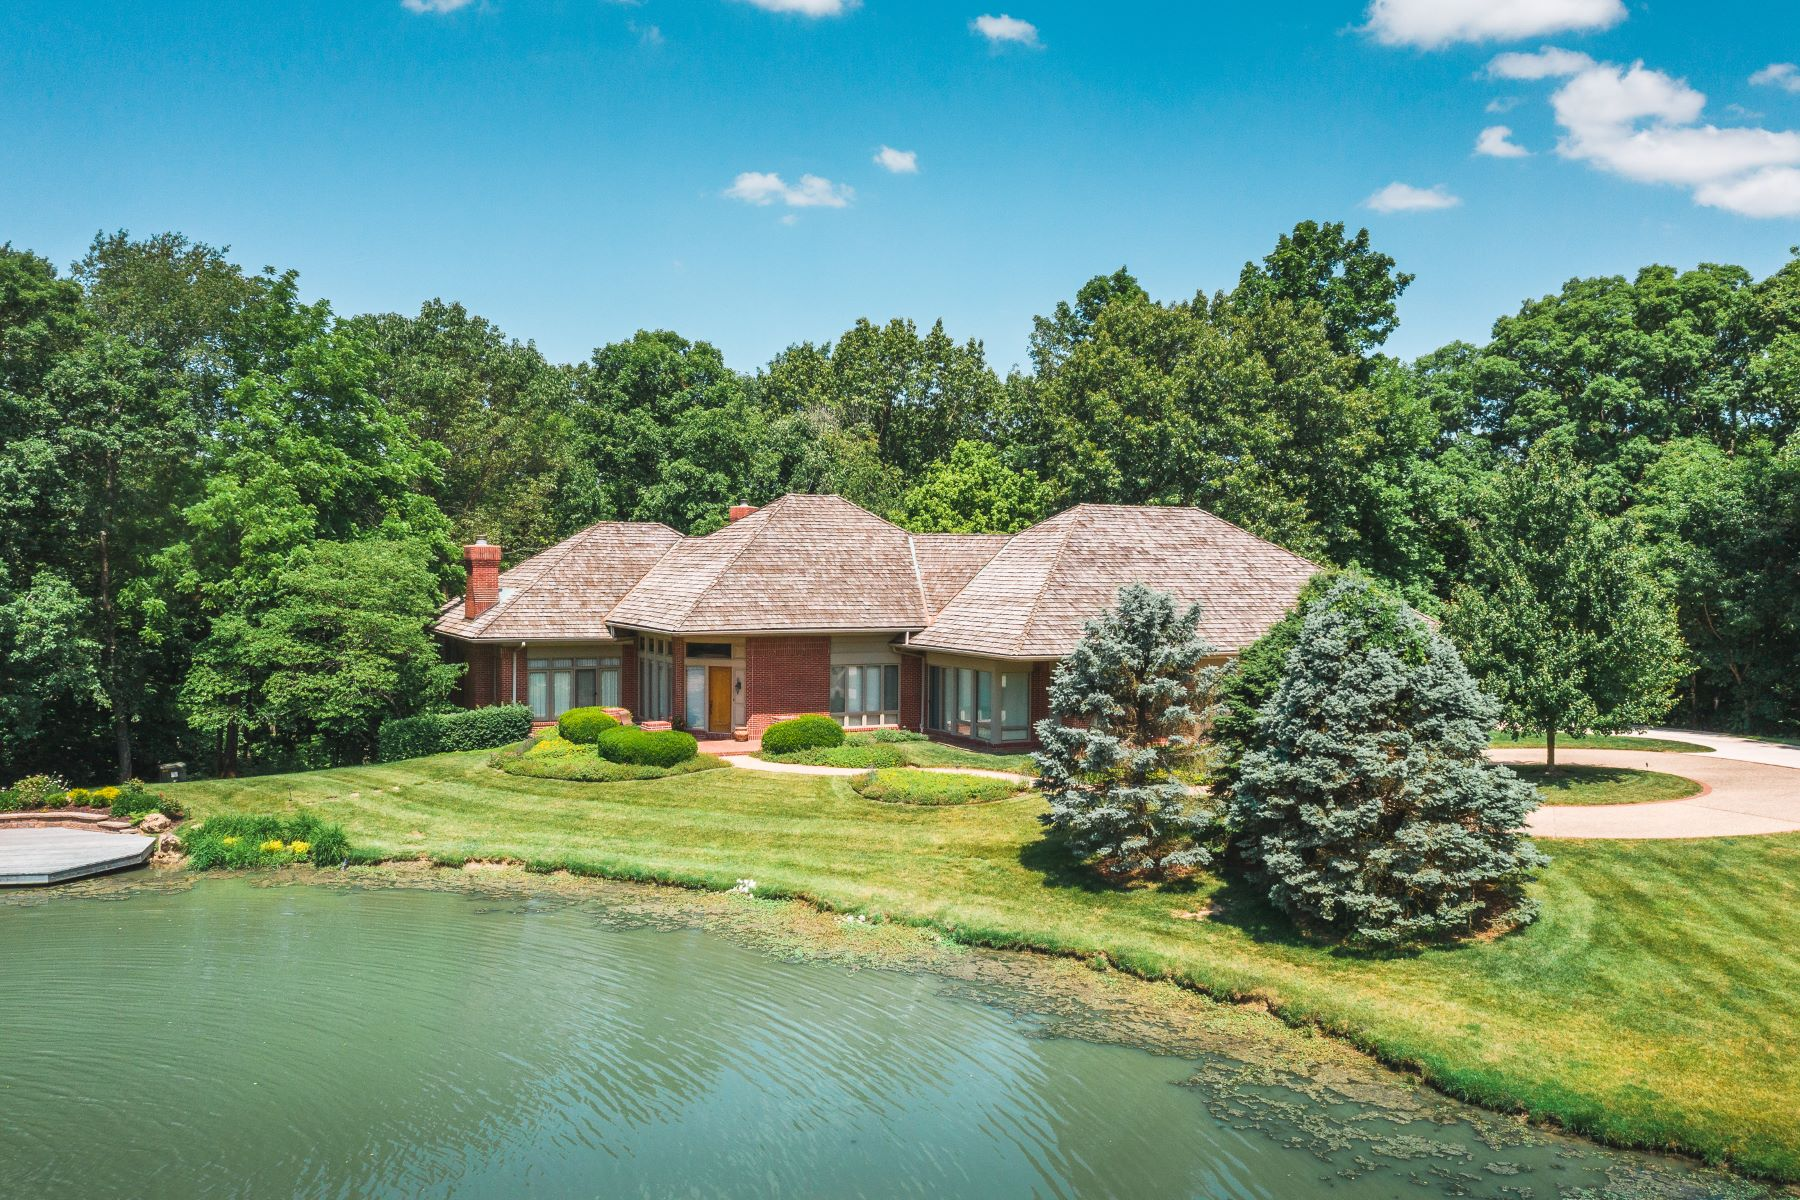 Single Family Homes for Sale at Exceptionally Maintained Custom Home on More Than 20 Acres 4900 Manitou Trail Godfrey, Illinois 62035 United States